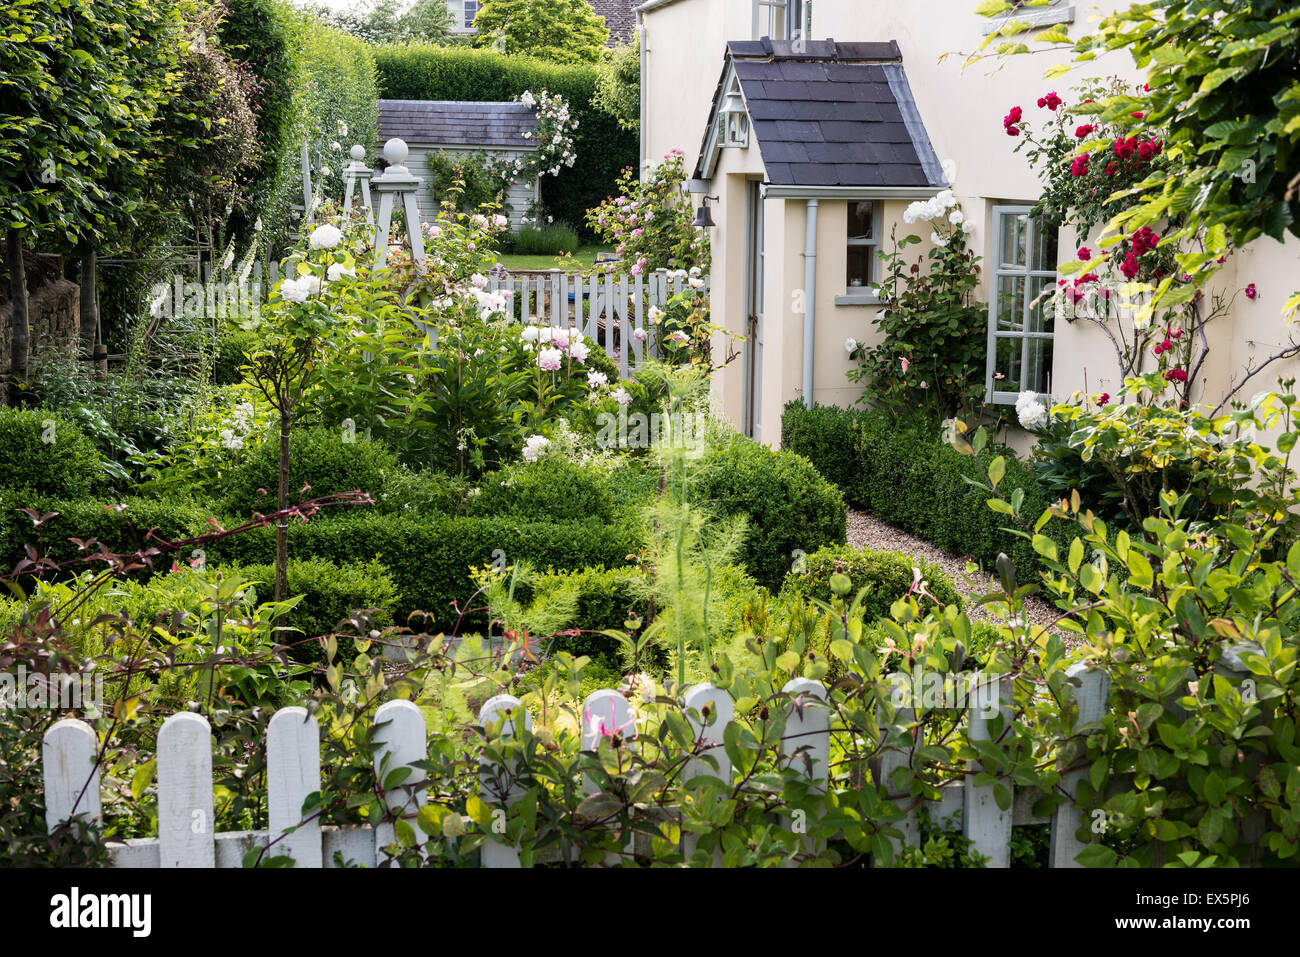 Exterior Facade Of An English Country Cottage With Picket Fence And Rose Garden